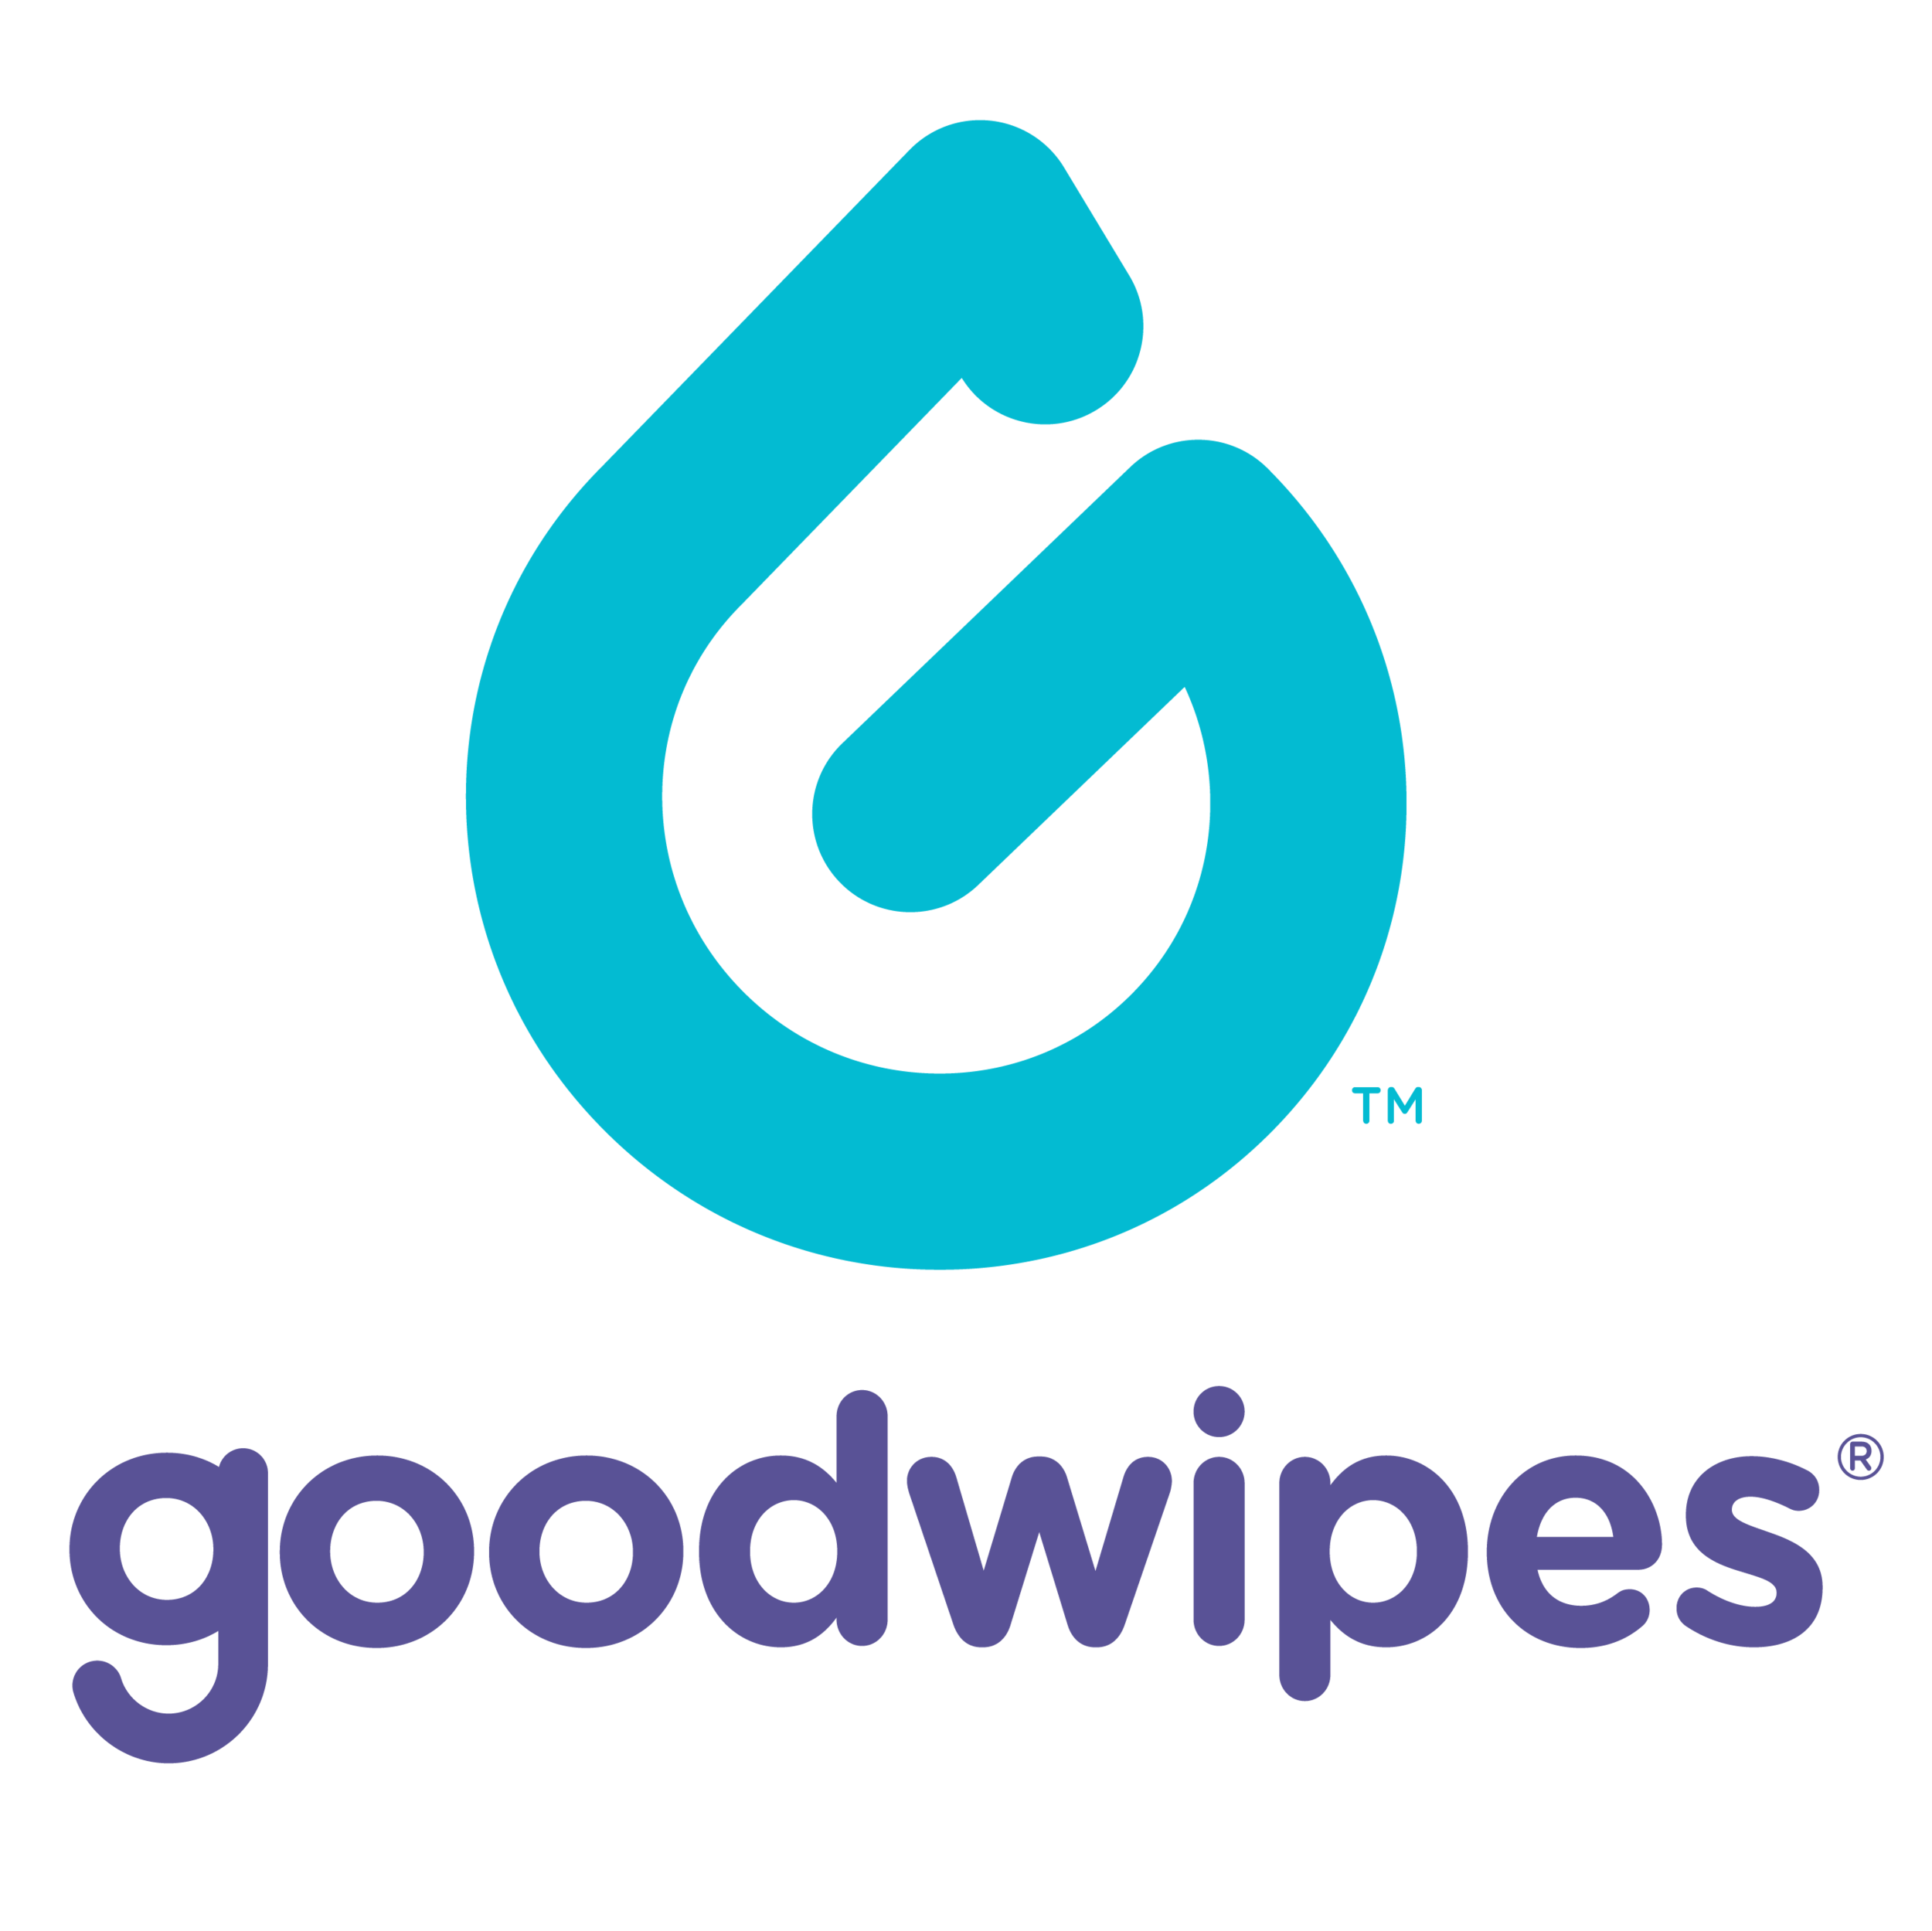 goodwipes logo.png